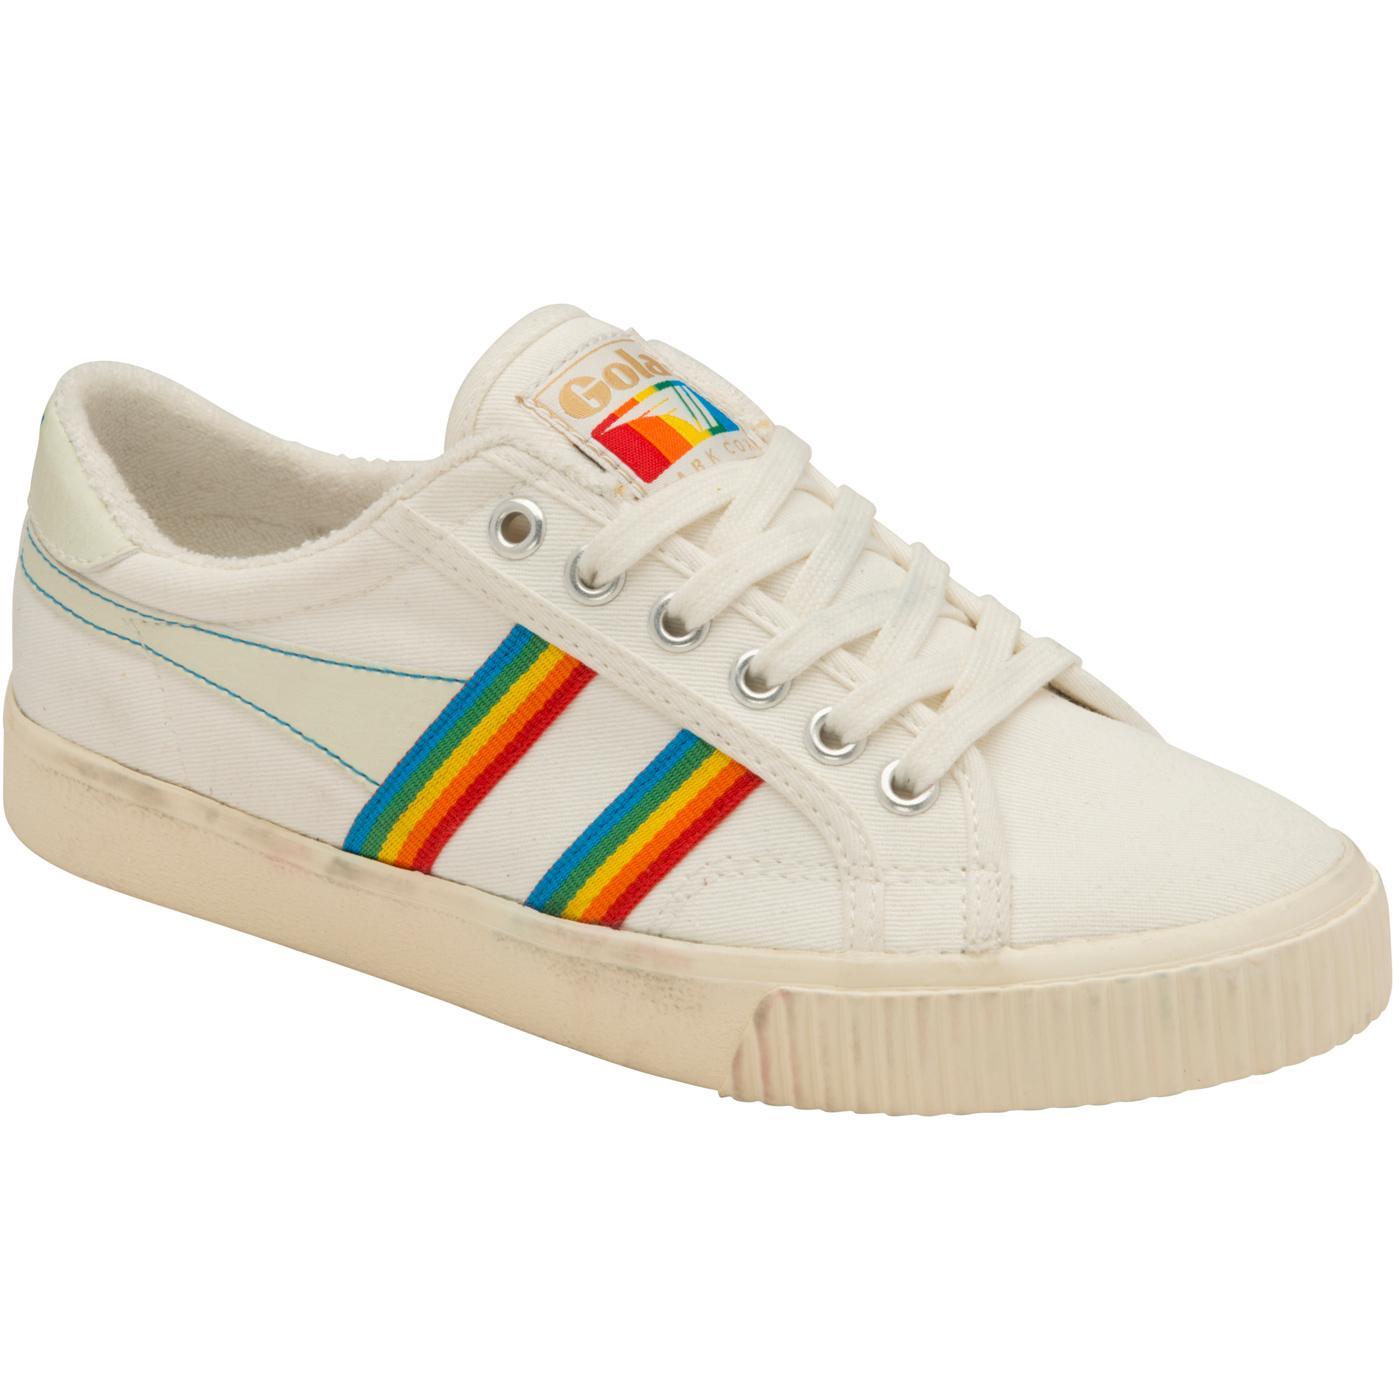 Tennis Mark Cox Rainbow GOLA Retro Canvas Trainers